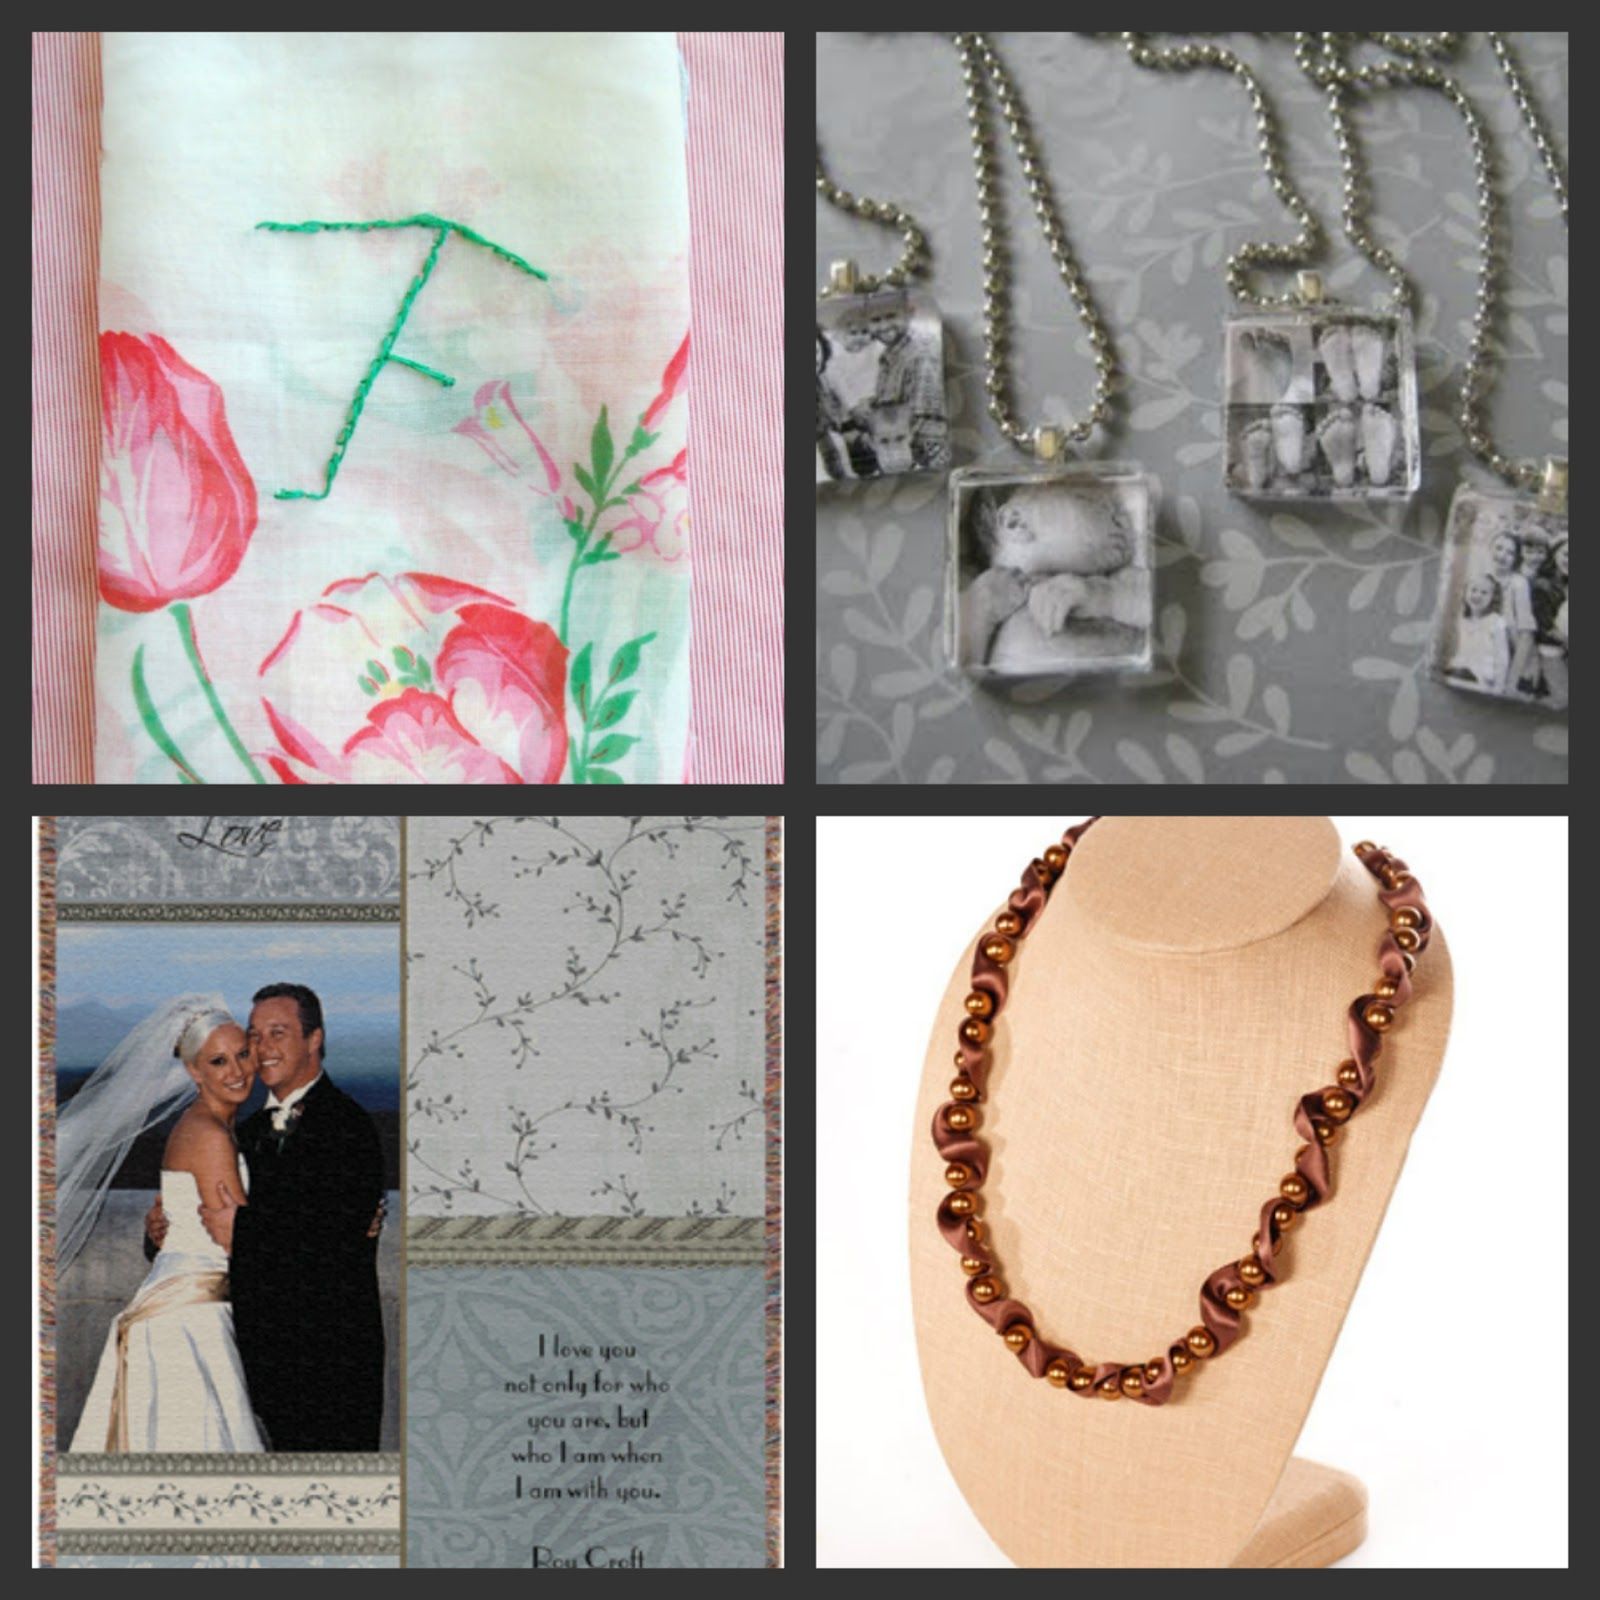 Mom Wedding Gift Ideas : Weddings Are Fun Blog: Gift Ideas for the Bride to Give Her Mother